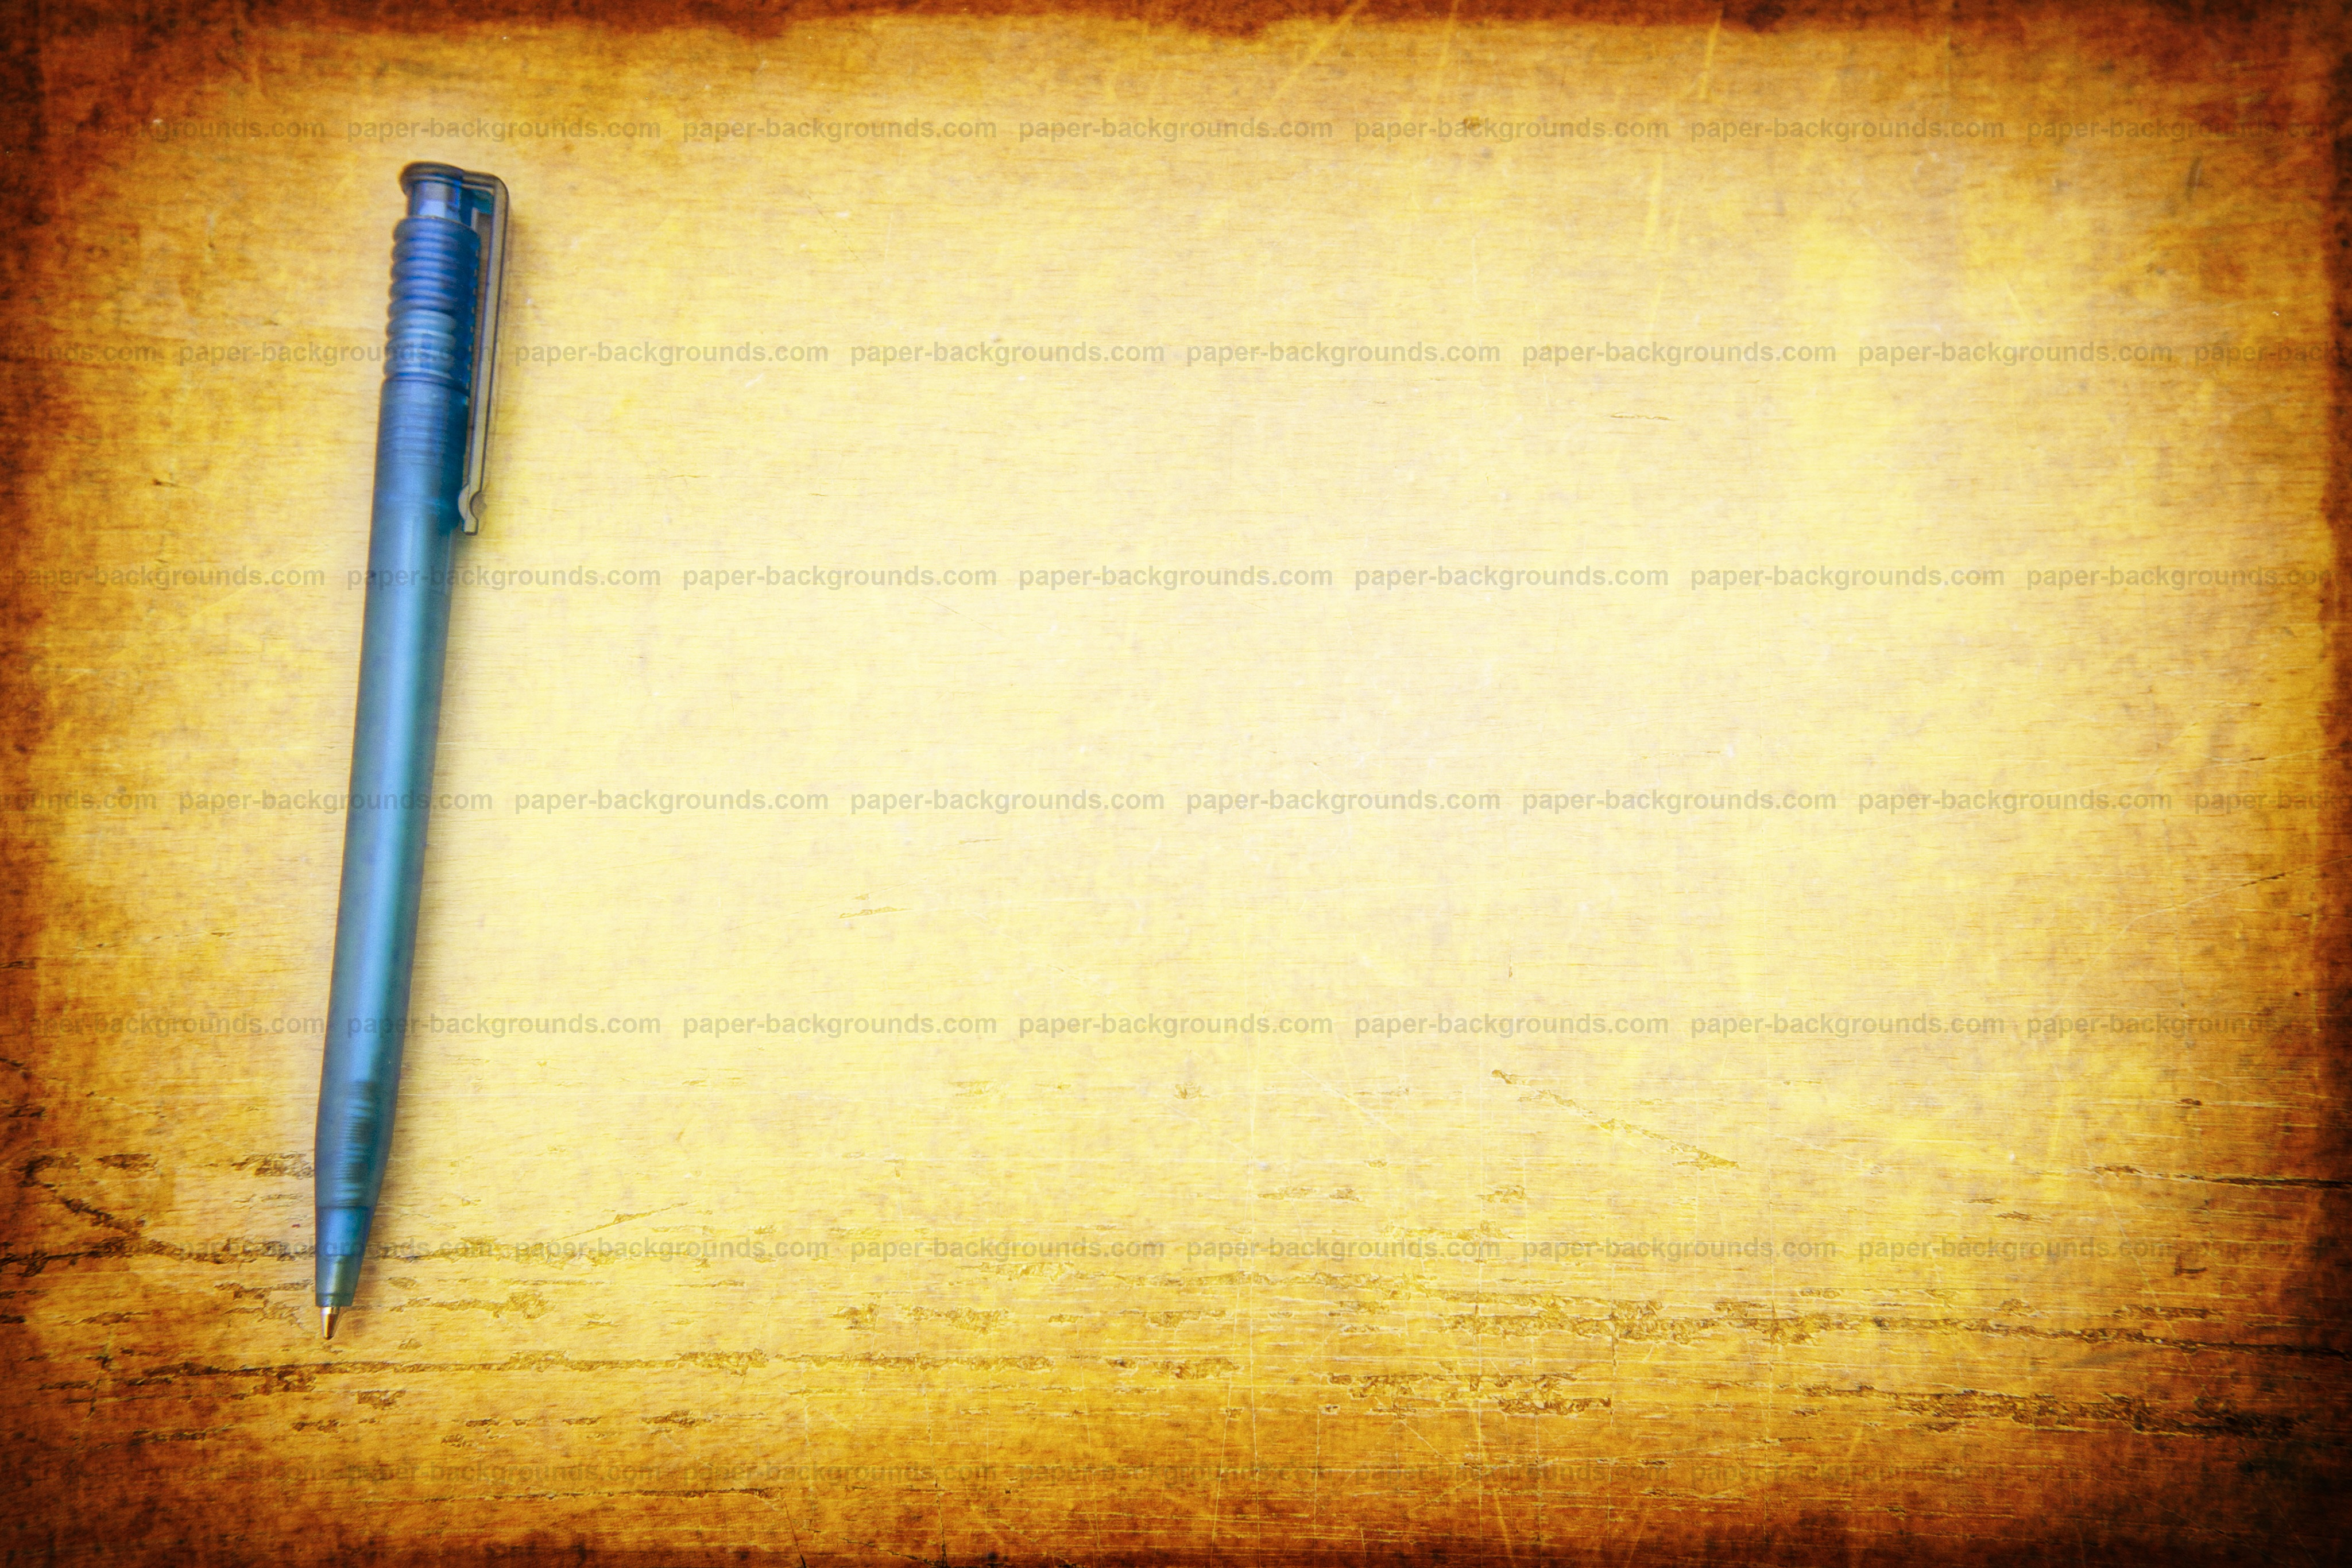 Pen on Table Vintage Background, High Resolution 4096 x 2731 pixels